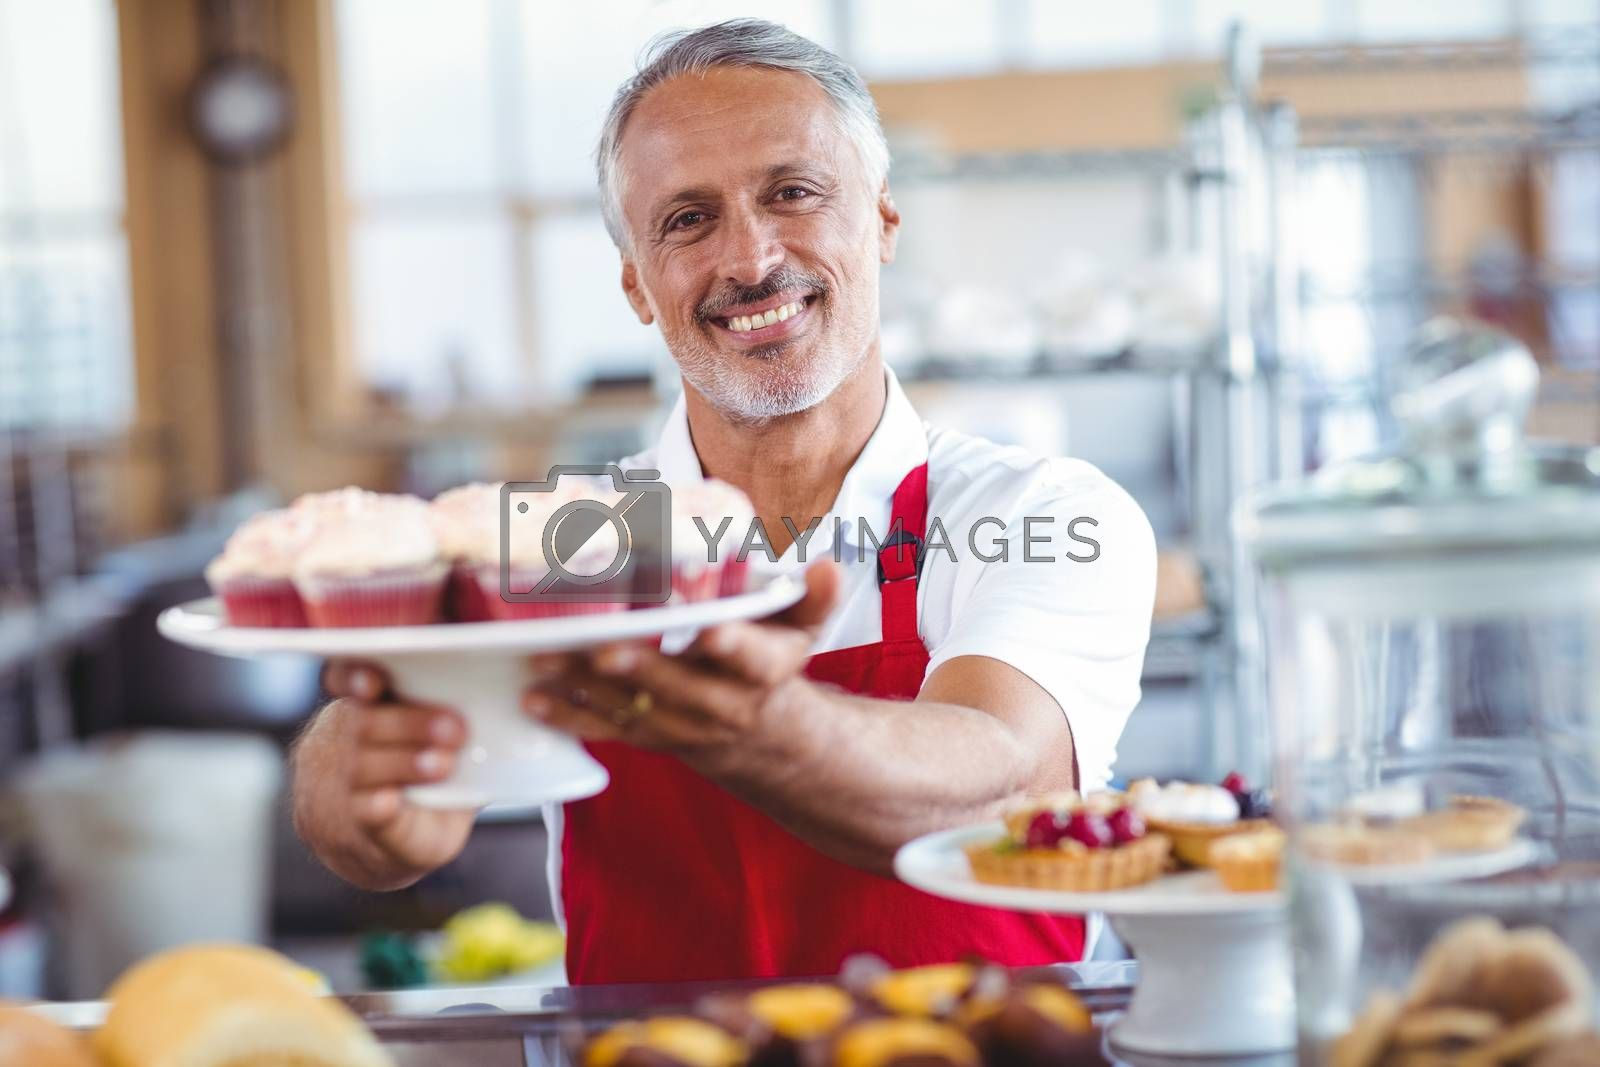 Royalty free image of Happy barista smiling at camera and holding a plate of cupcakes by Wavebreakmedia